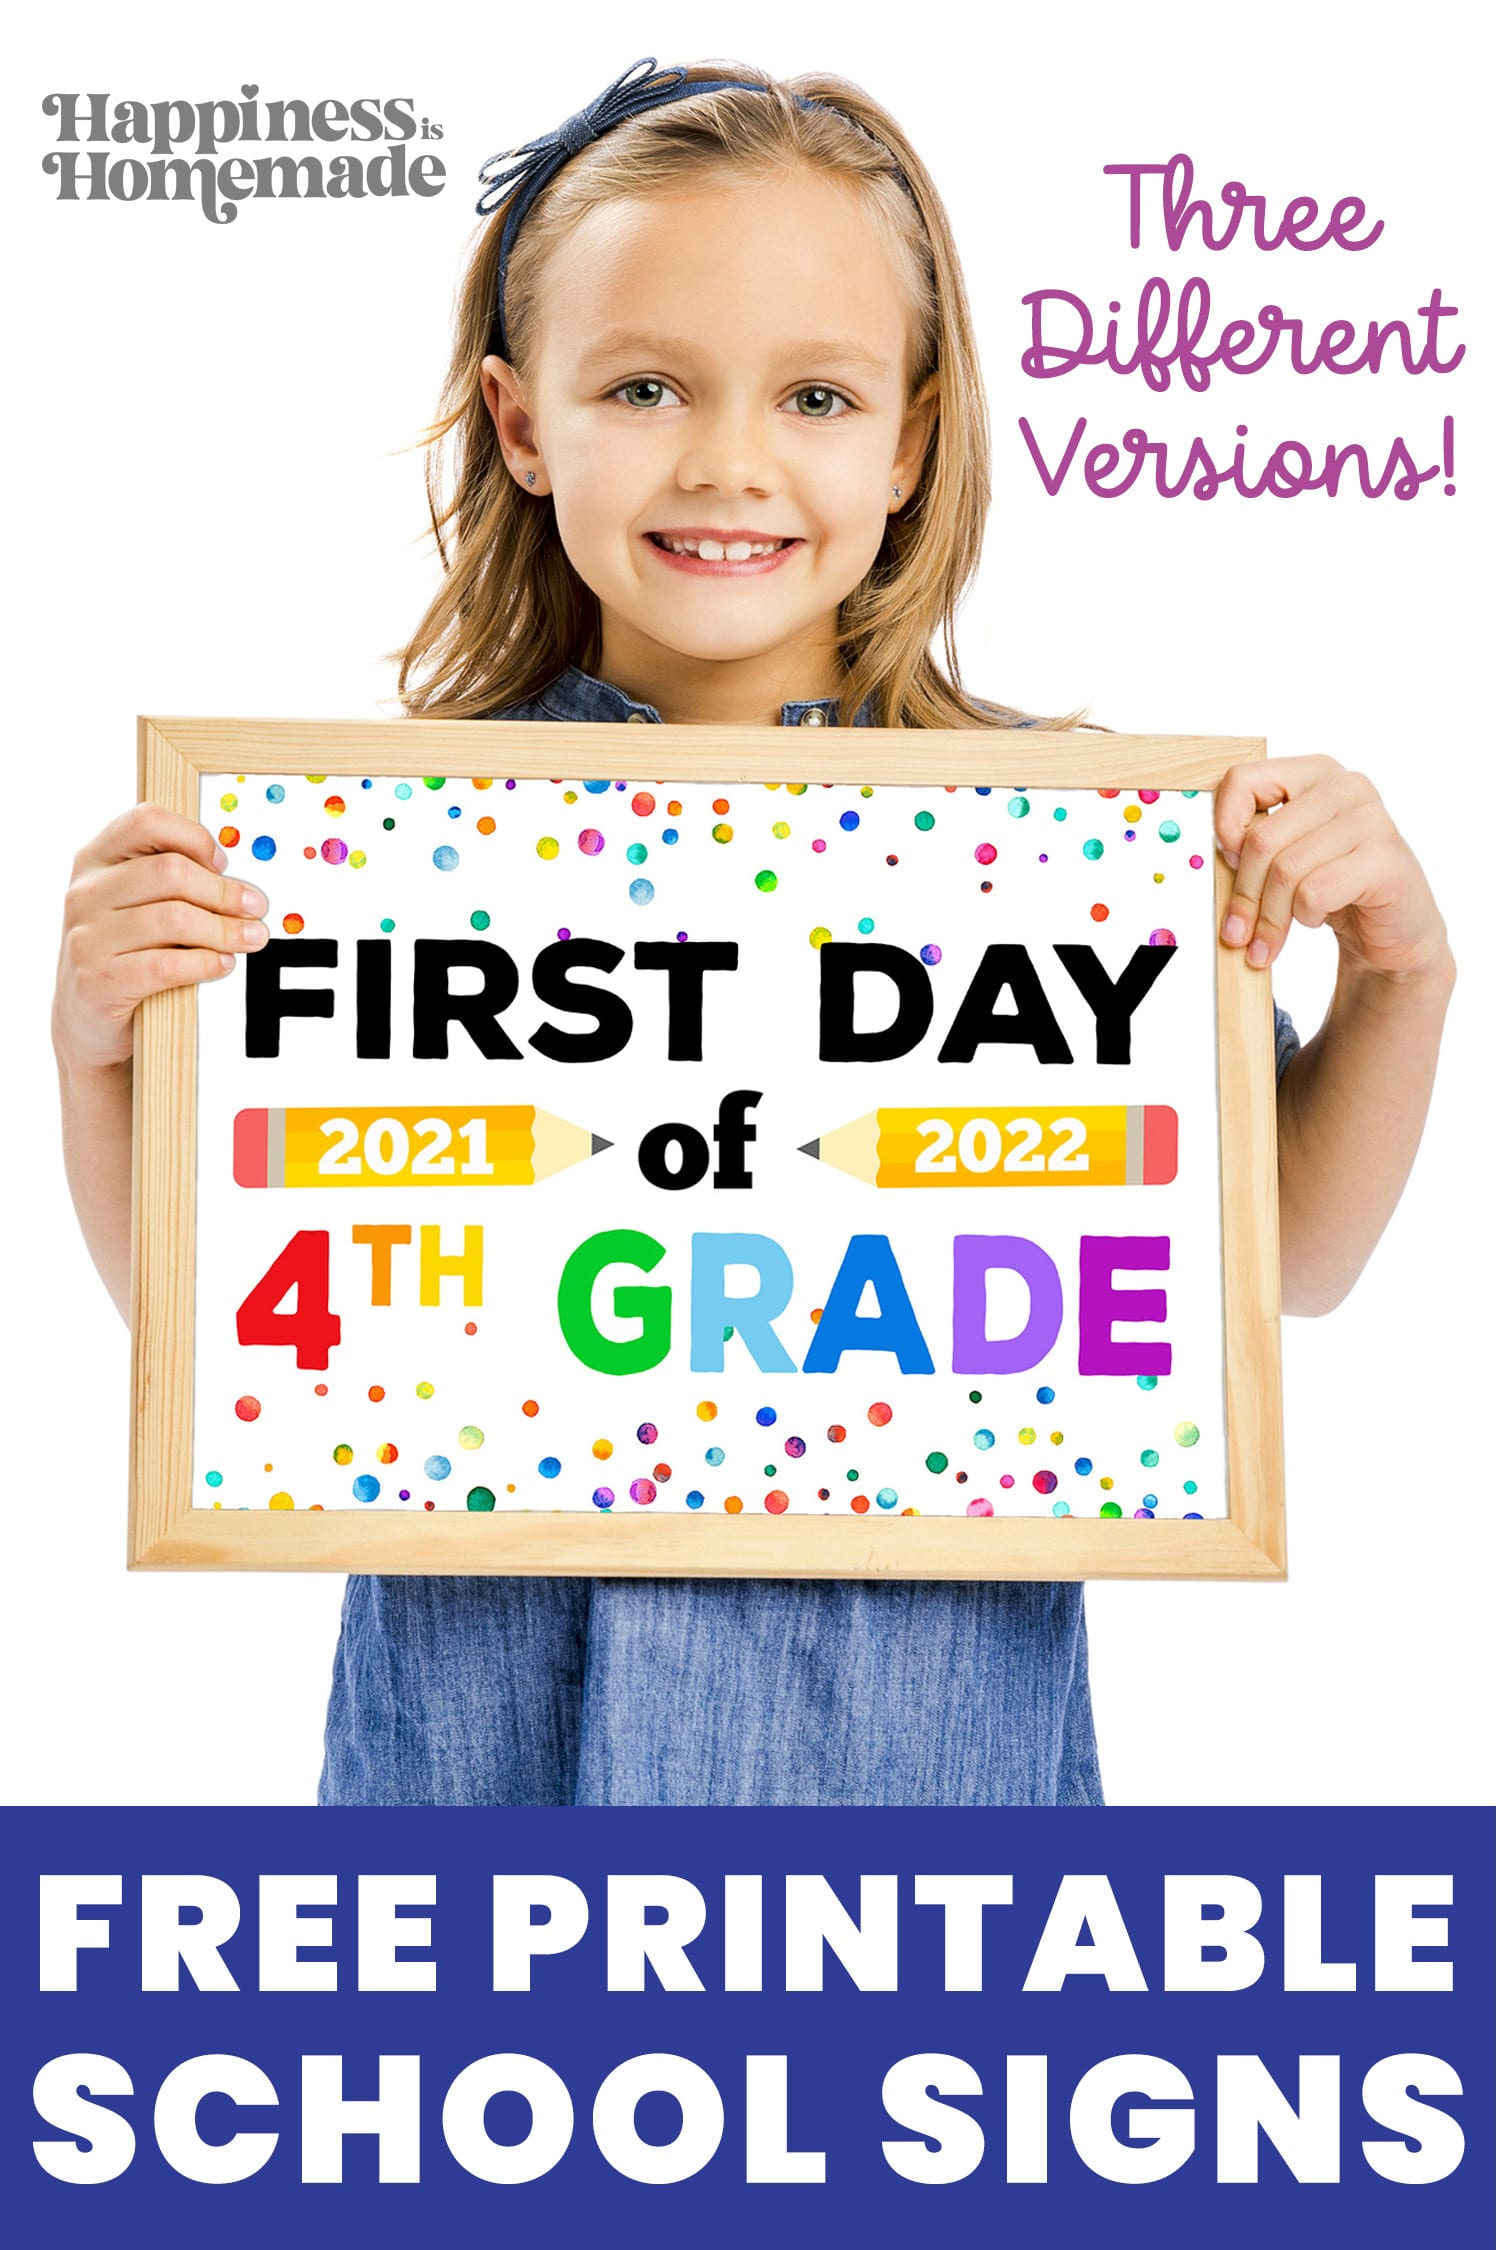 Girl with brown hair and headband holding printable First Day of School sign for 2021